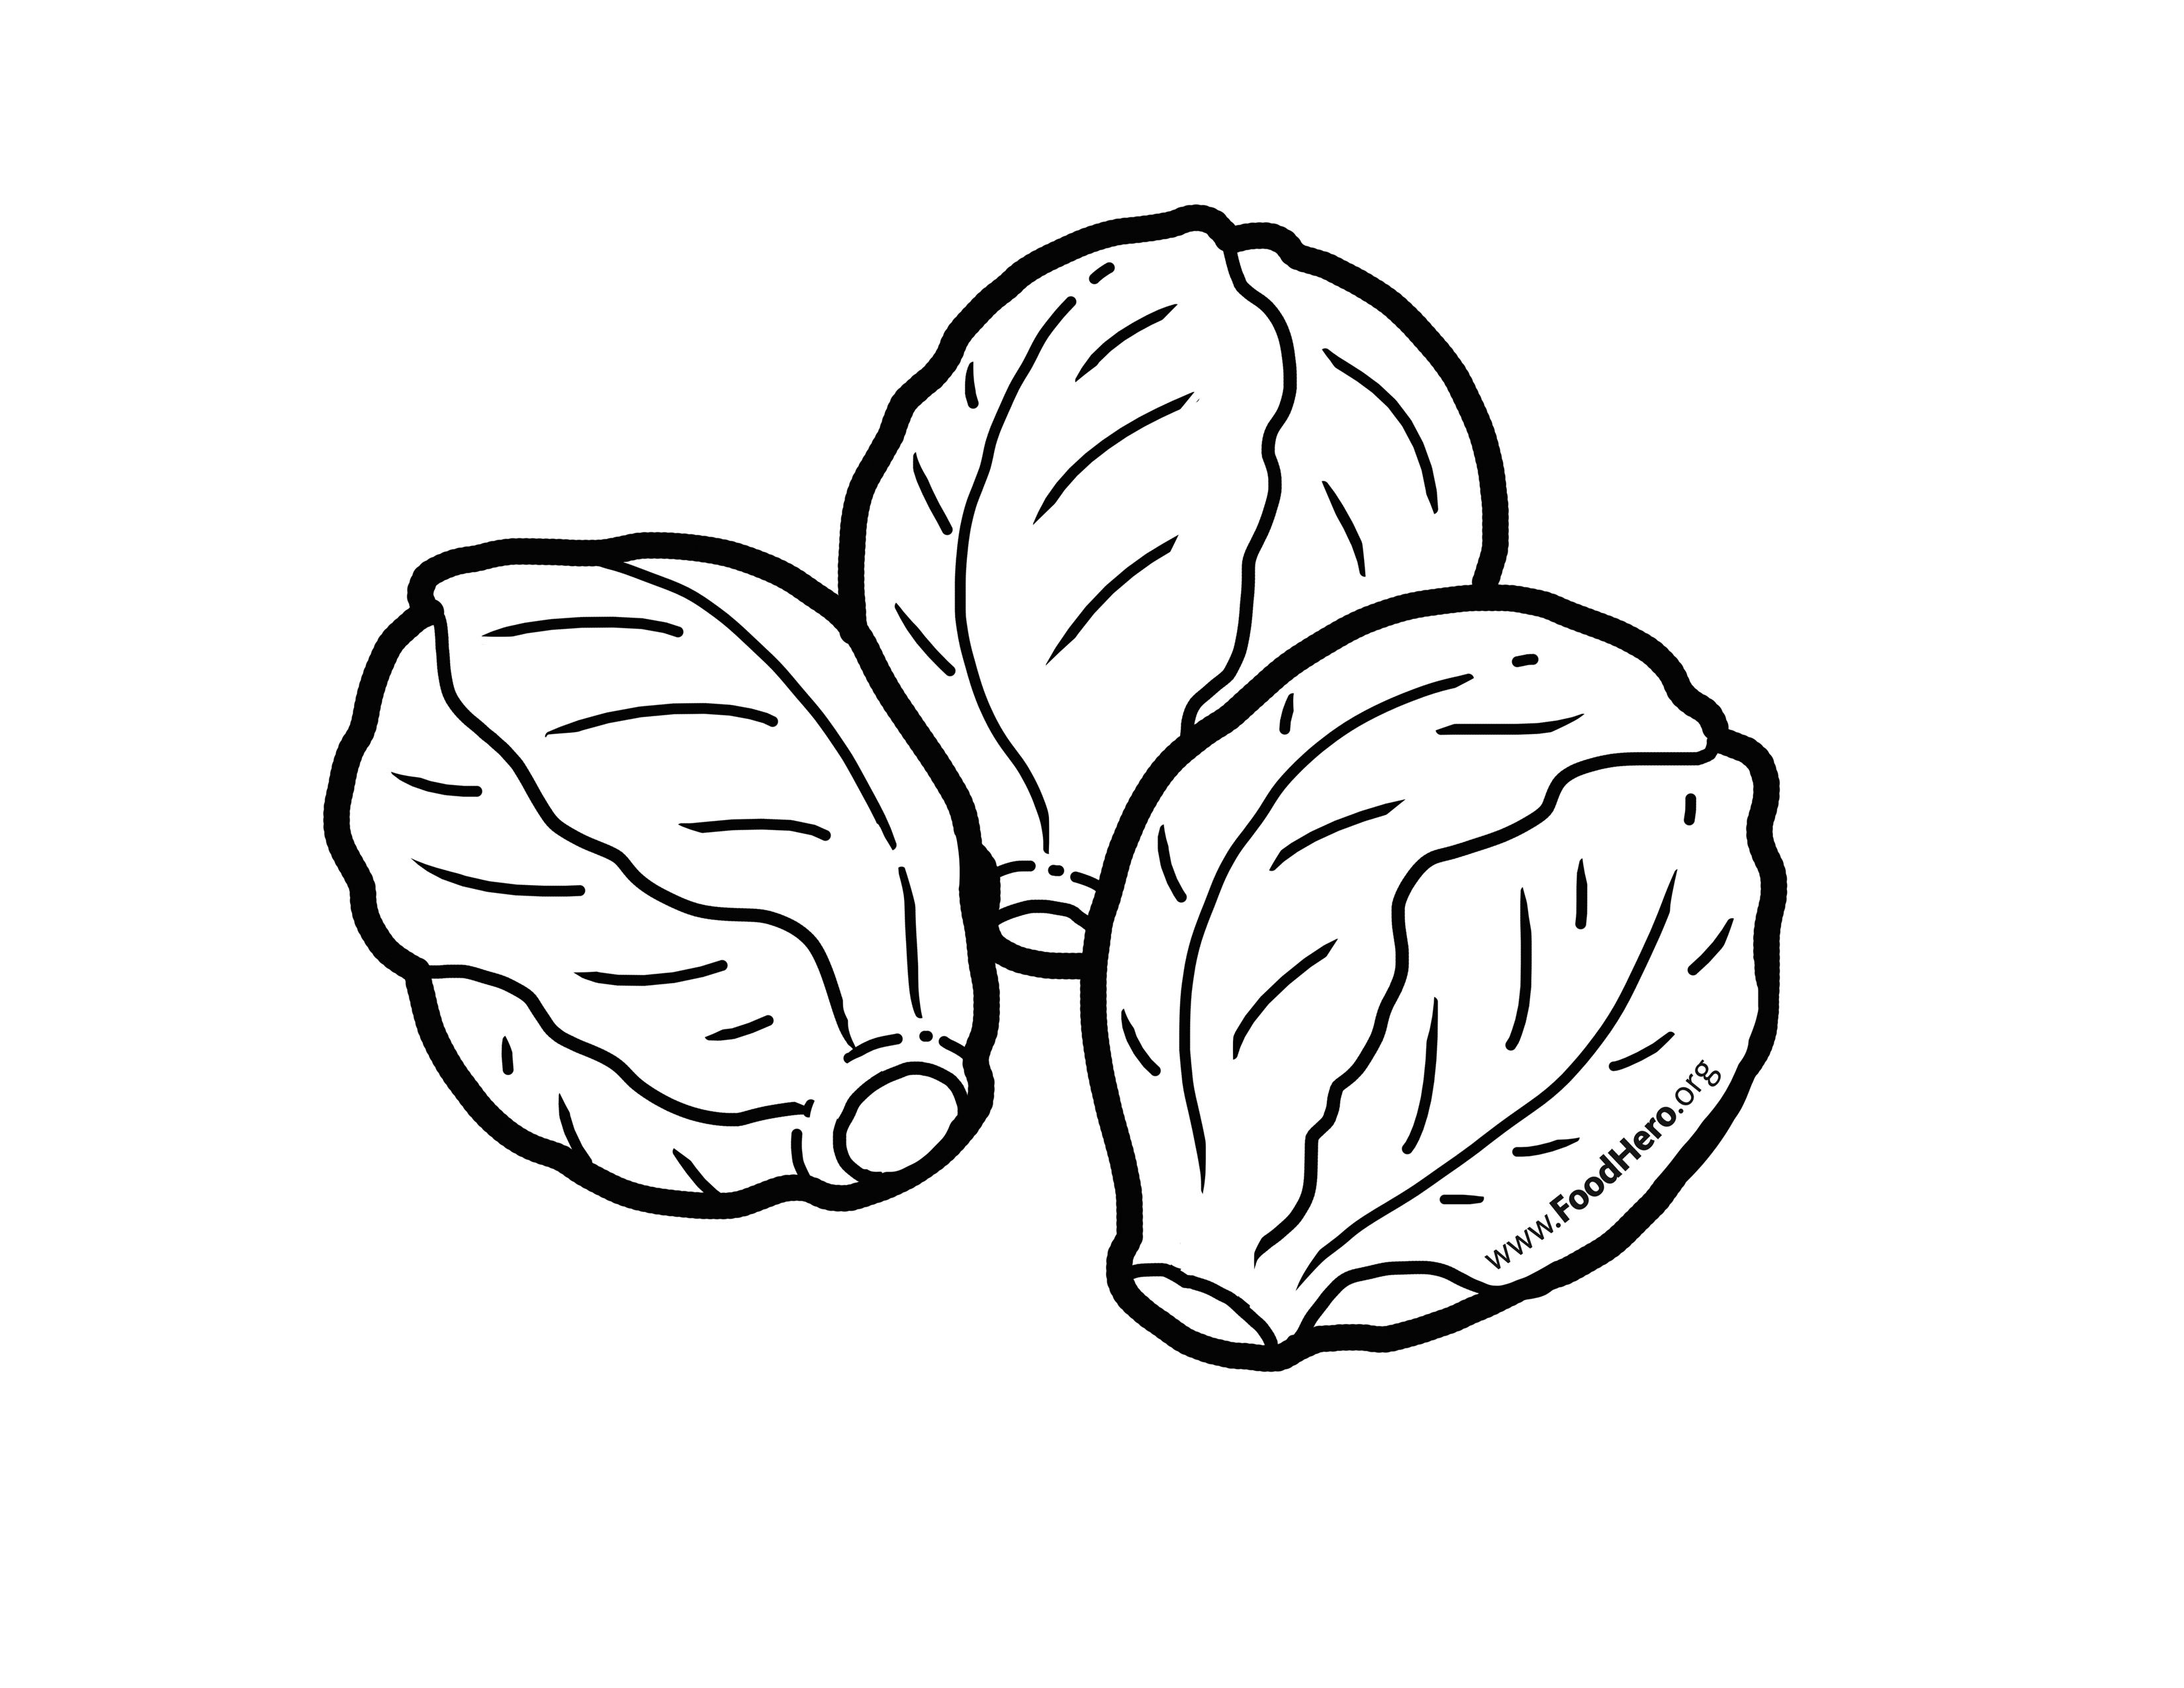 sprout coloring pages brussel sprout coloring page 2019 open coloring pages sprout pages coloring